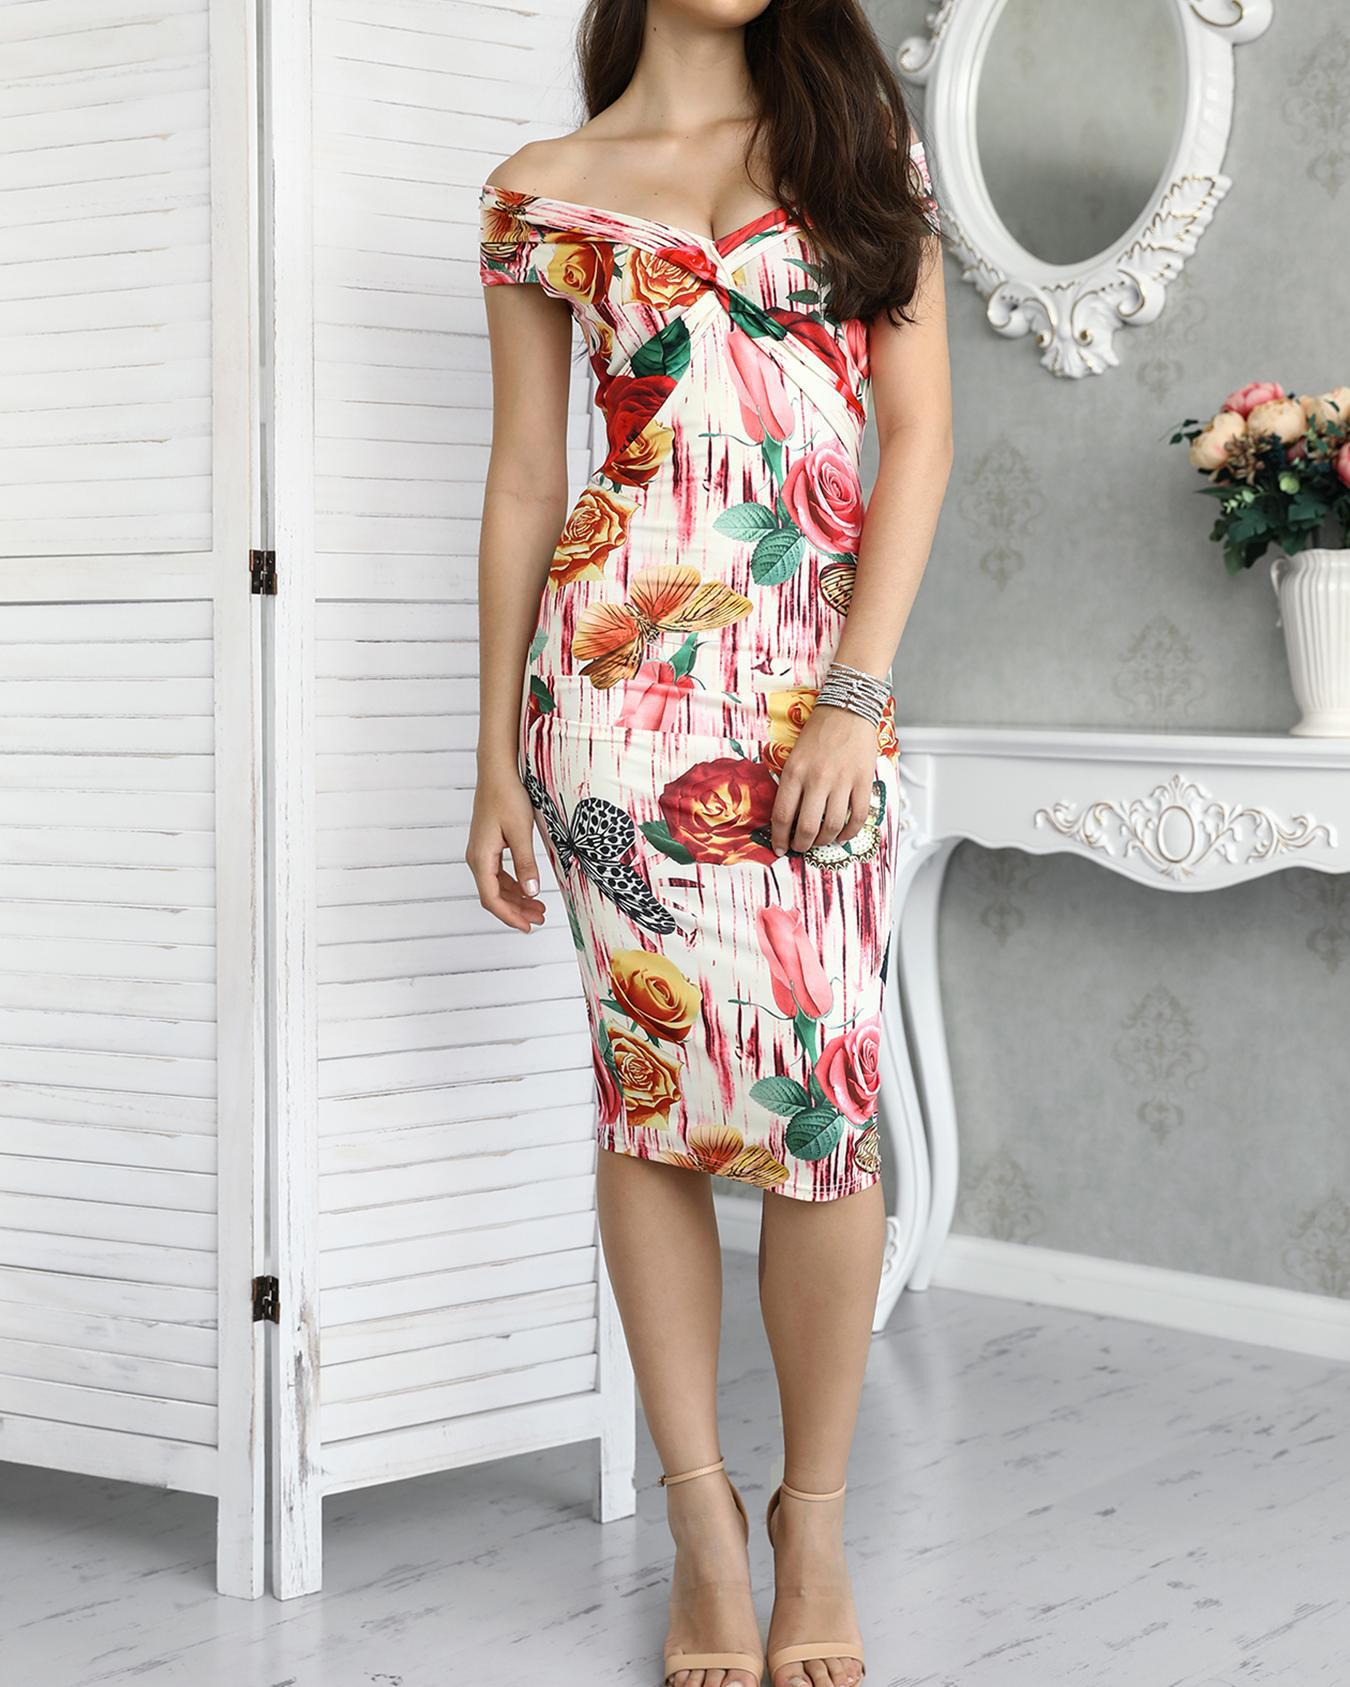 joyshoetique / Vintage Floral Twisted Fold-over Bodycon Midi Dress